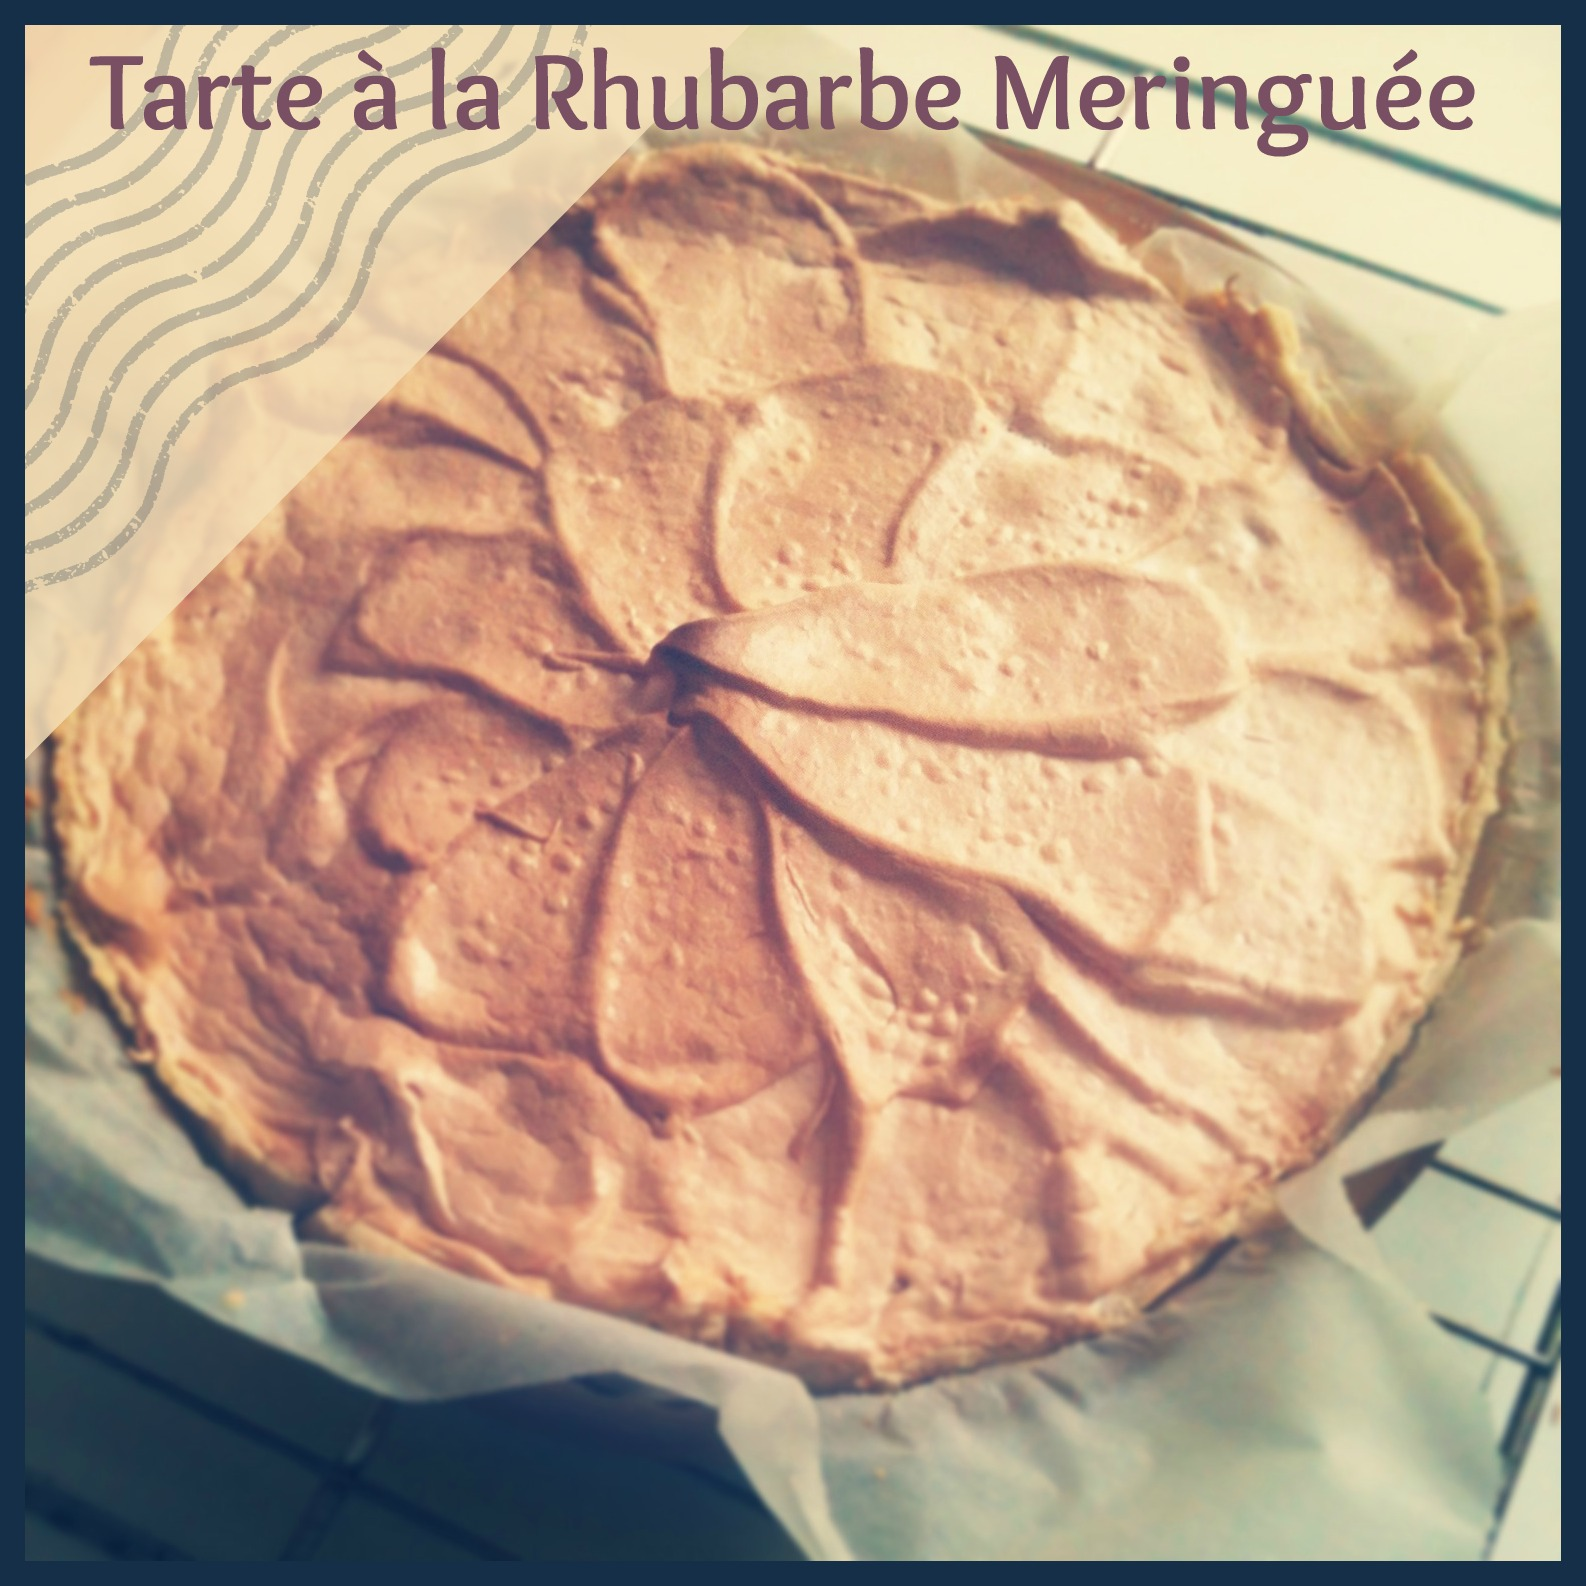 Tarte à la rhubarbe meringuée